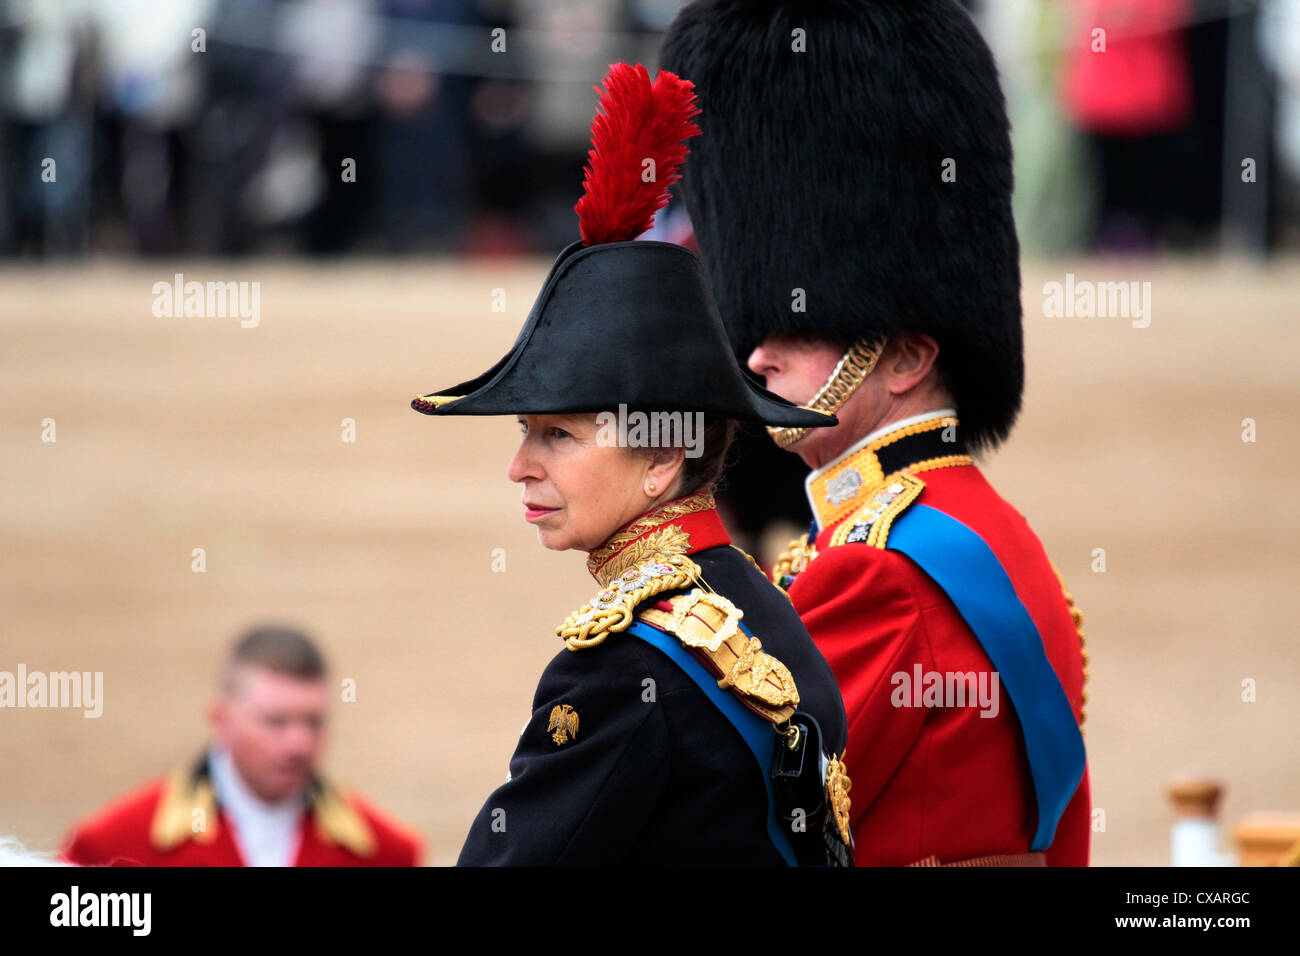 The Princess Royal, Trooping the Colour 2012, The Quuen's Birthday Parade, Whitehall, Horse Guards, London, - Stock Image